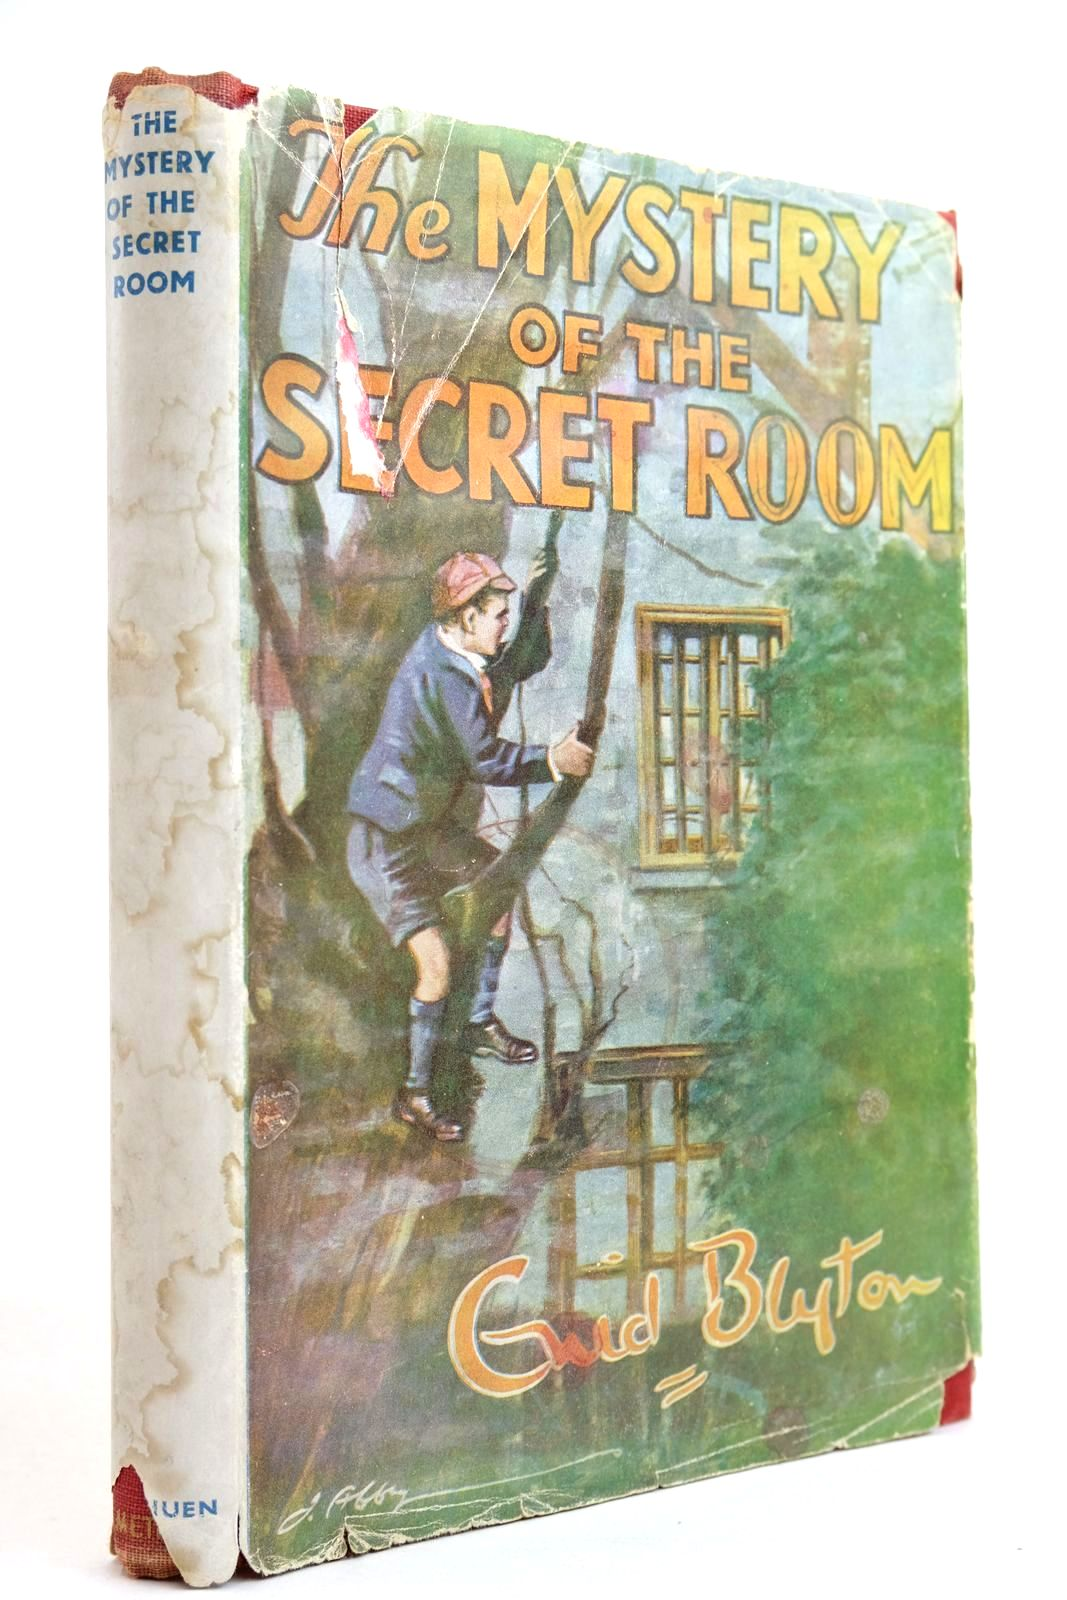 Photo of THE MYSTERY OF THE SECRET ROOM written by Blyton, Enid illustrated by Abbey, J. published by Methuen & Co. Ltd. (STOCK CODE: 2134316)  for sale by Stella & Rose's Books